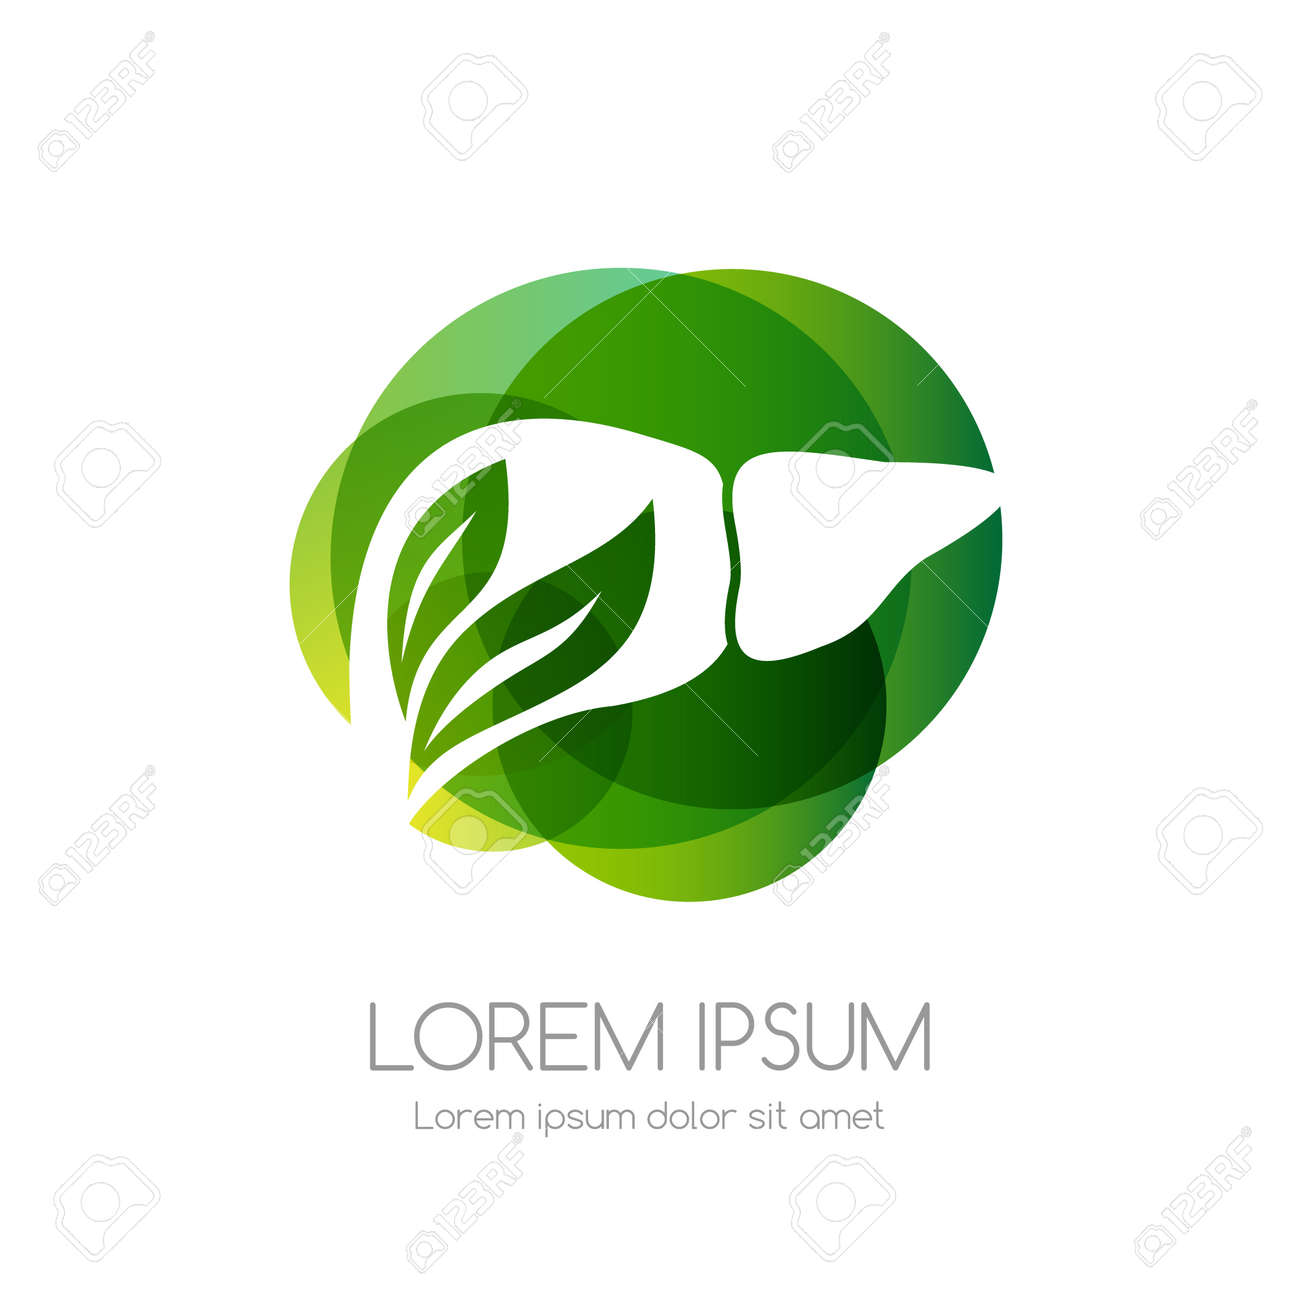 Liver with leaves and green abstract shape. Medical emblem. Health care vector icon. - 158145317